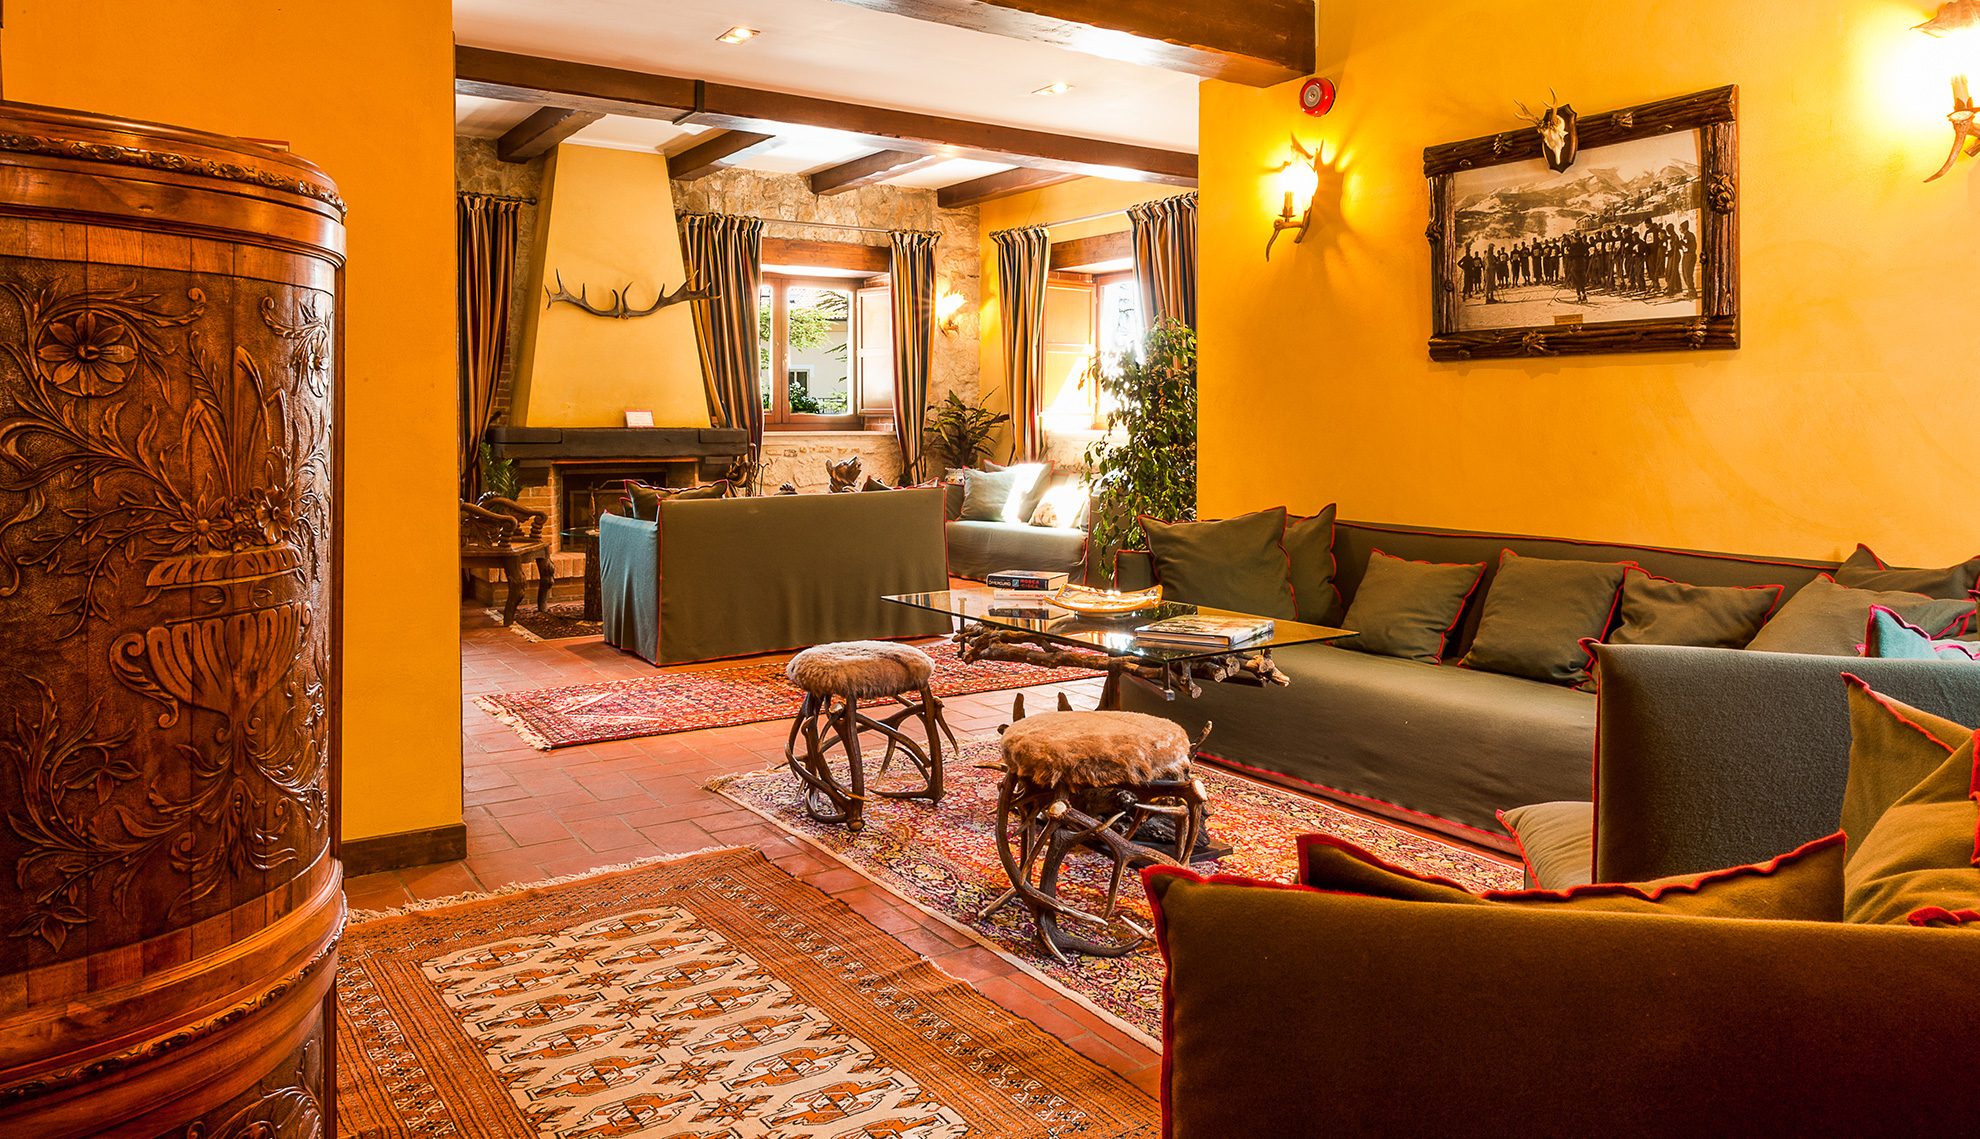 Hotel a Pescocostanzo Relais Ducale - 5 stelle